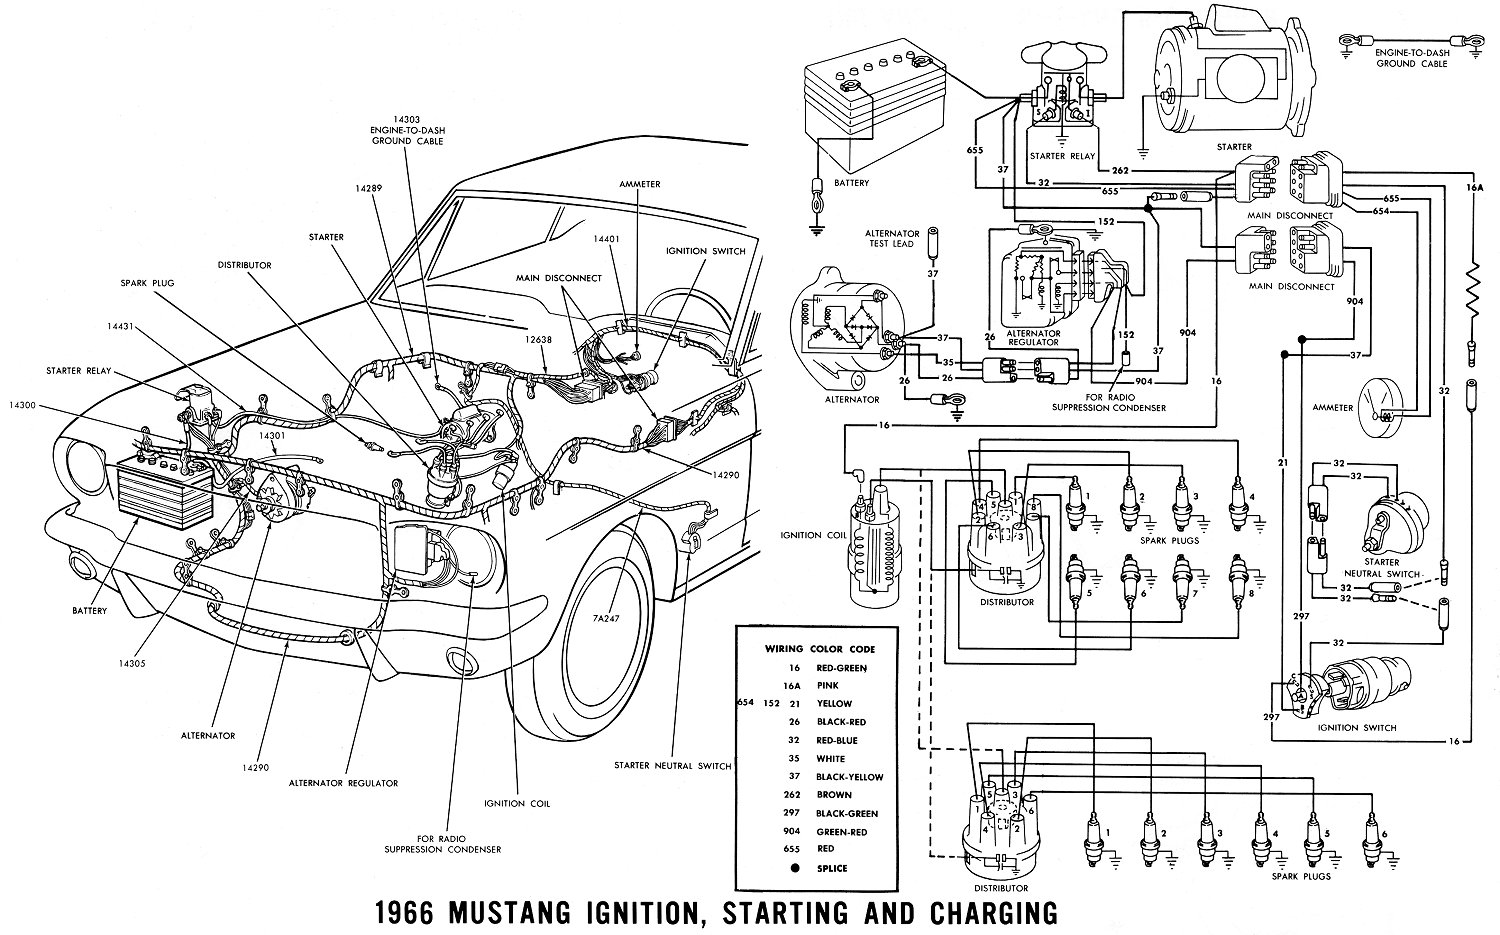 89 Mustang Wiring Harness : 25 Wiring Diagram Images